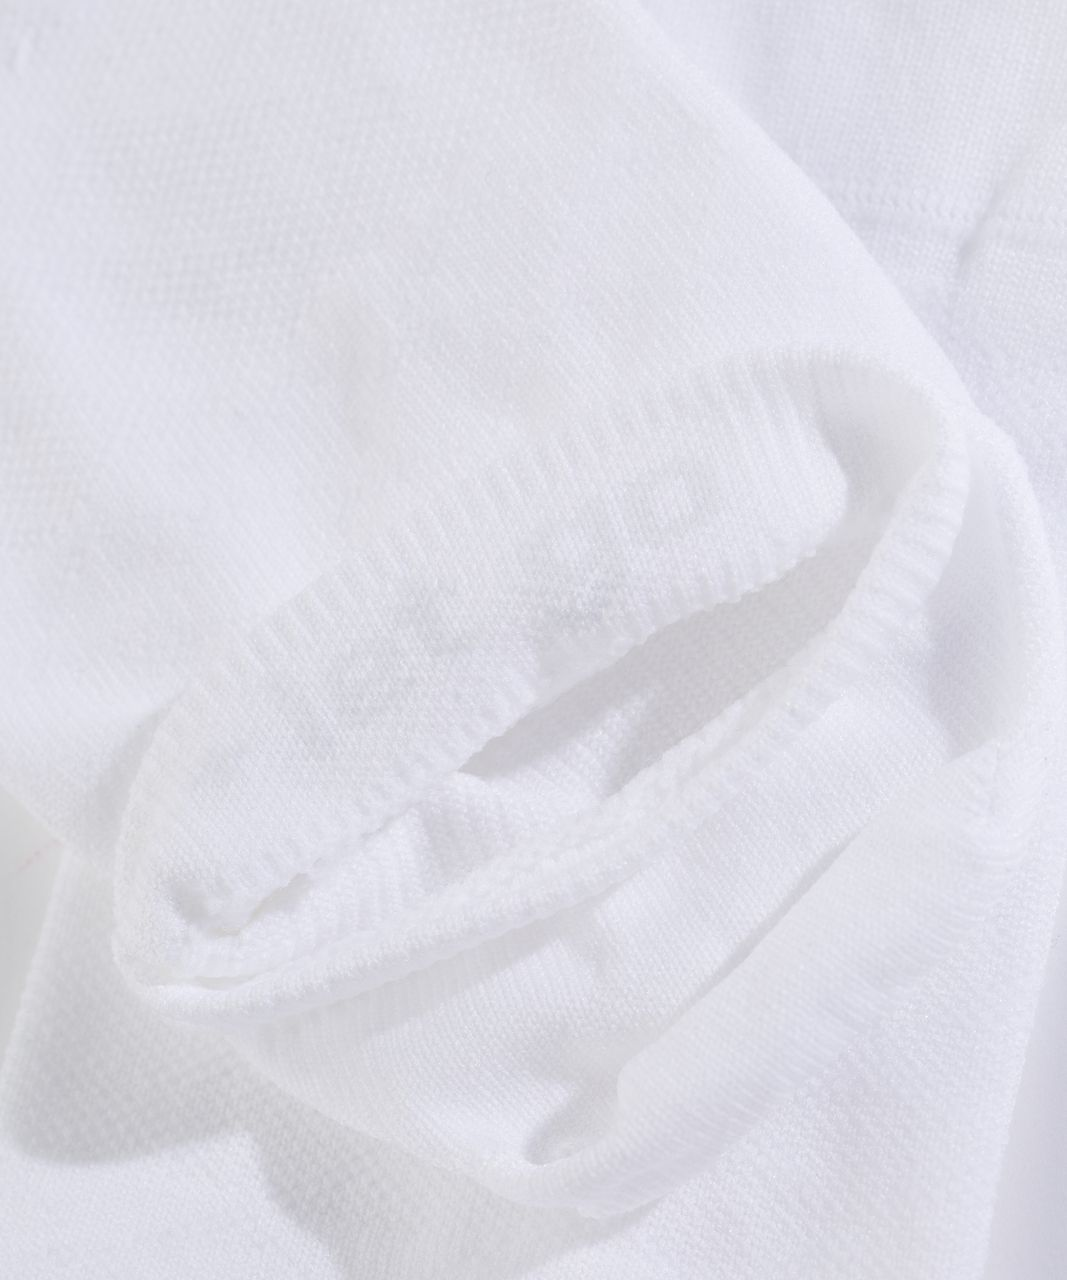 Lululemon Play All Day Sock - White (First Release)